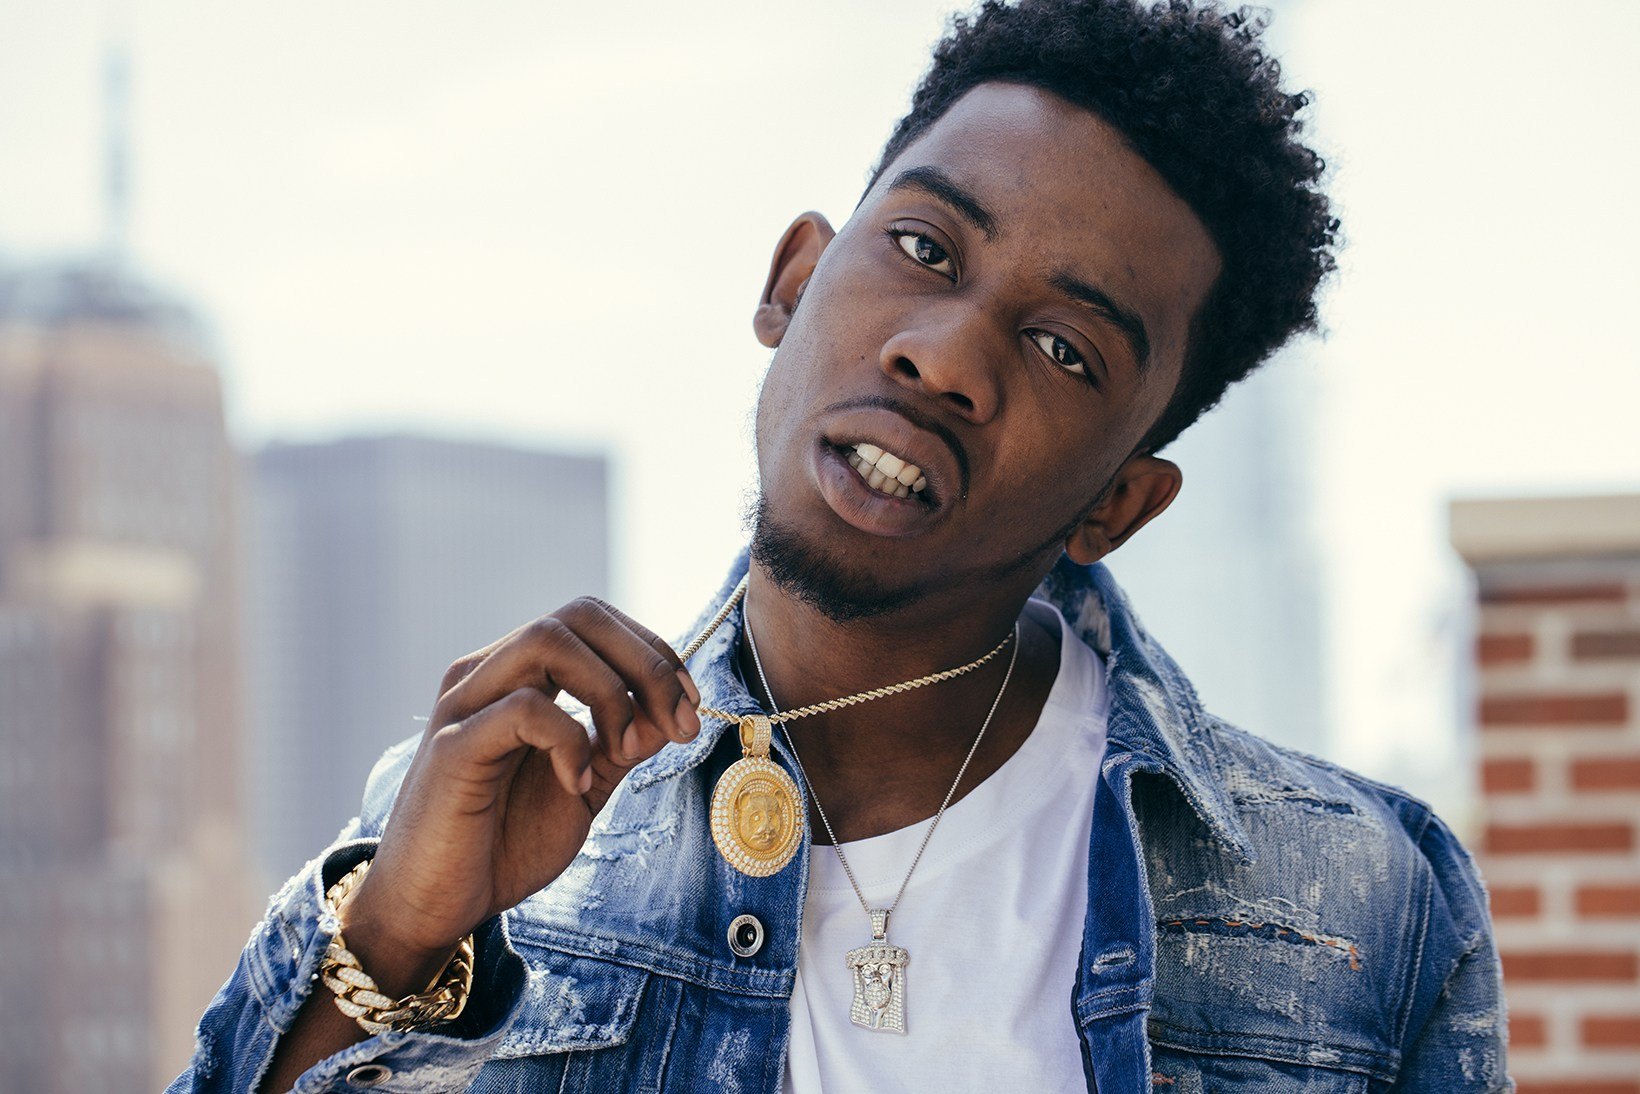 Https Hypebeast Com 2016 6 Desiigner Hot 97 Interview